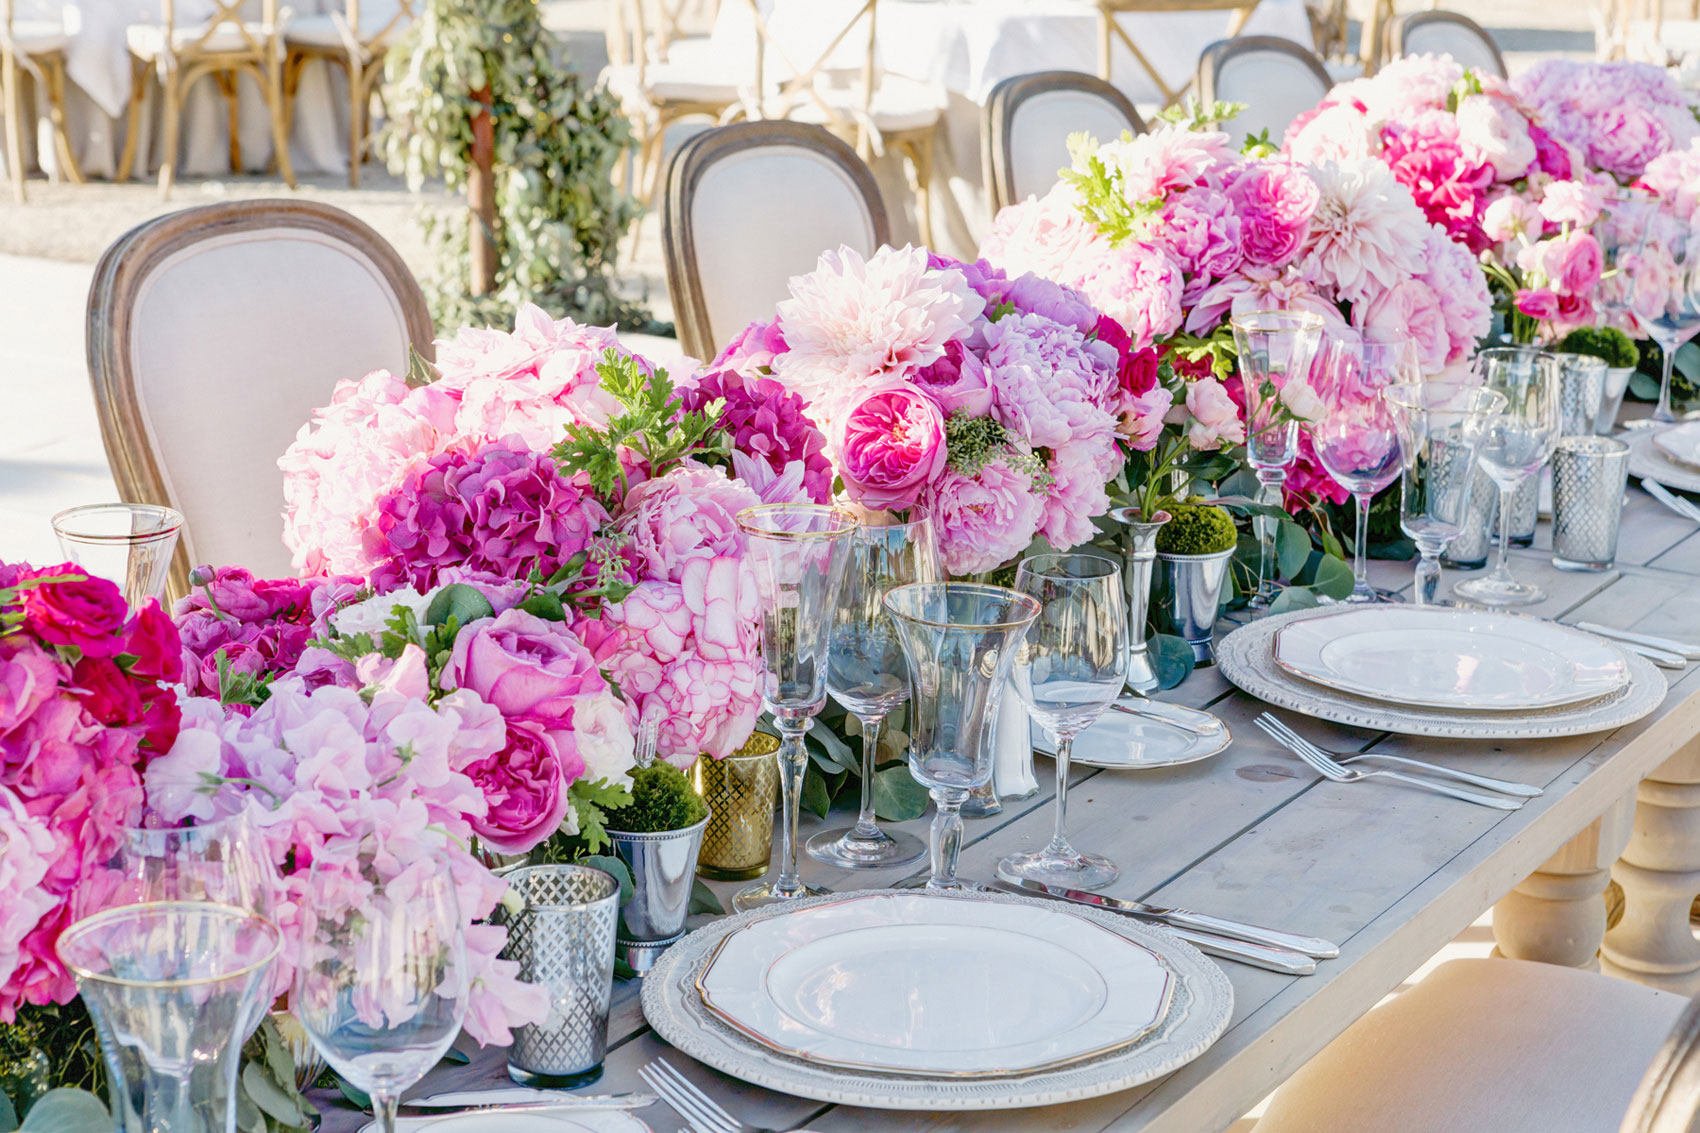 Pink flower table runner at outdoor wedding